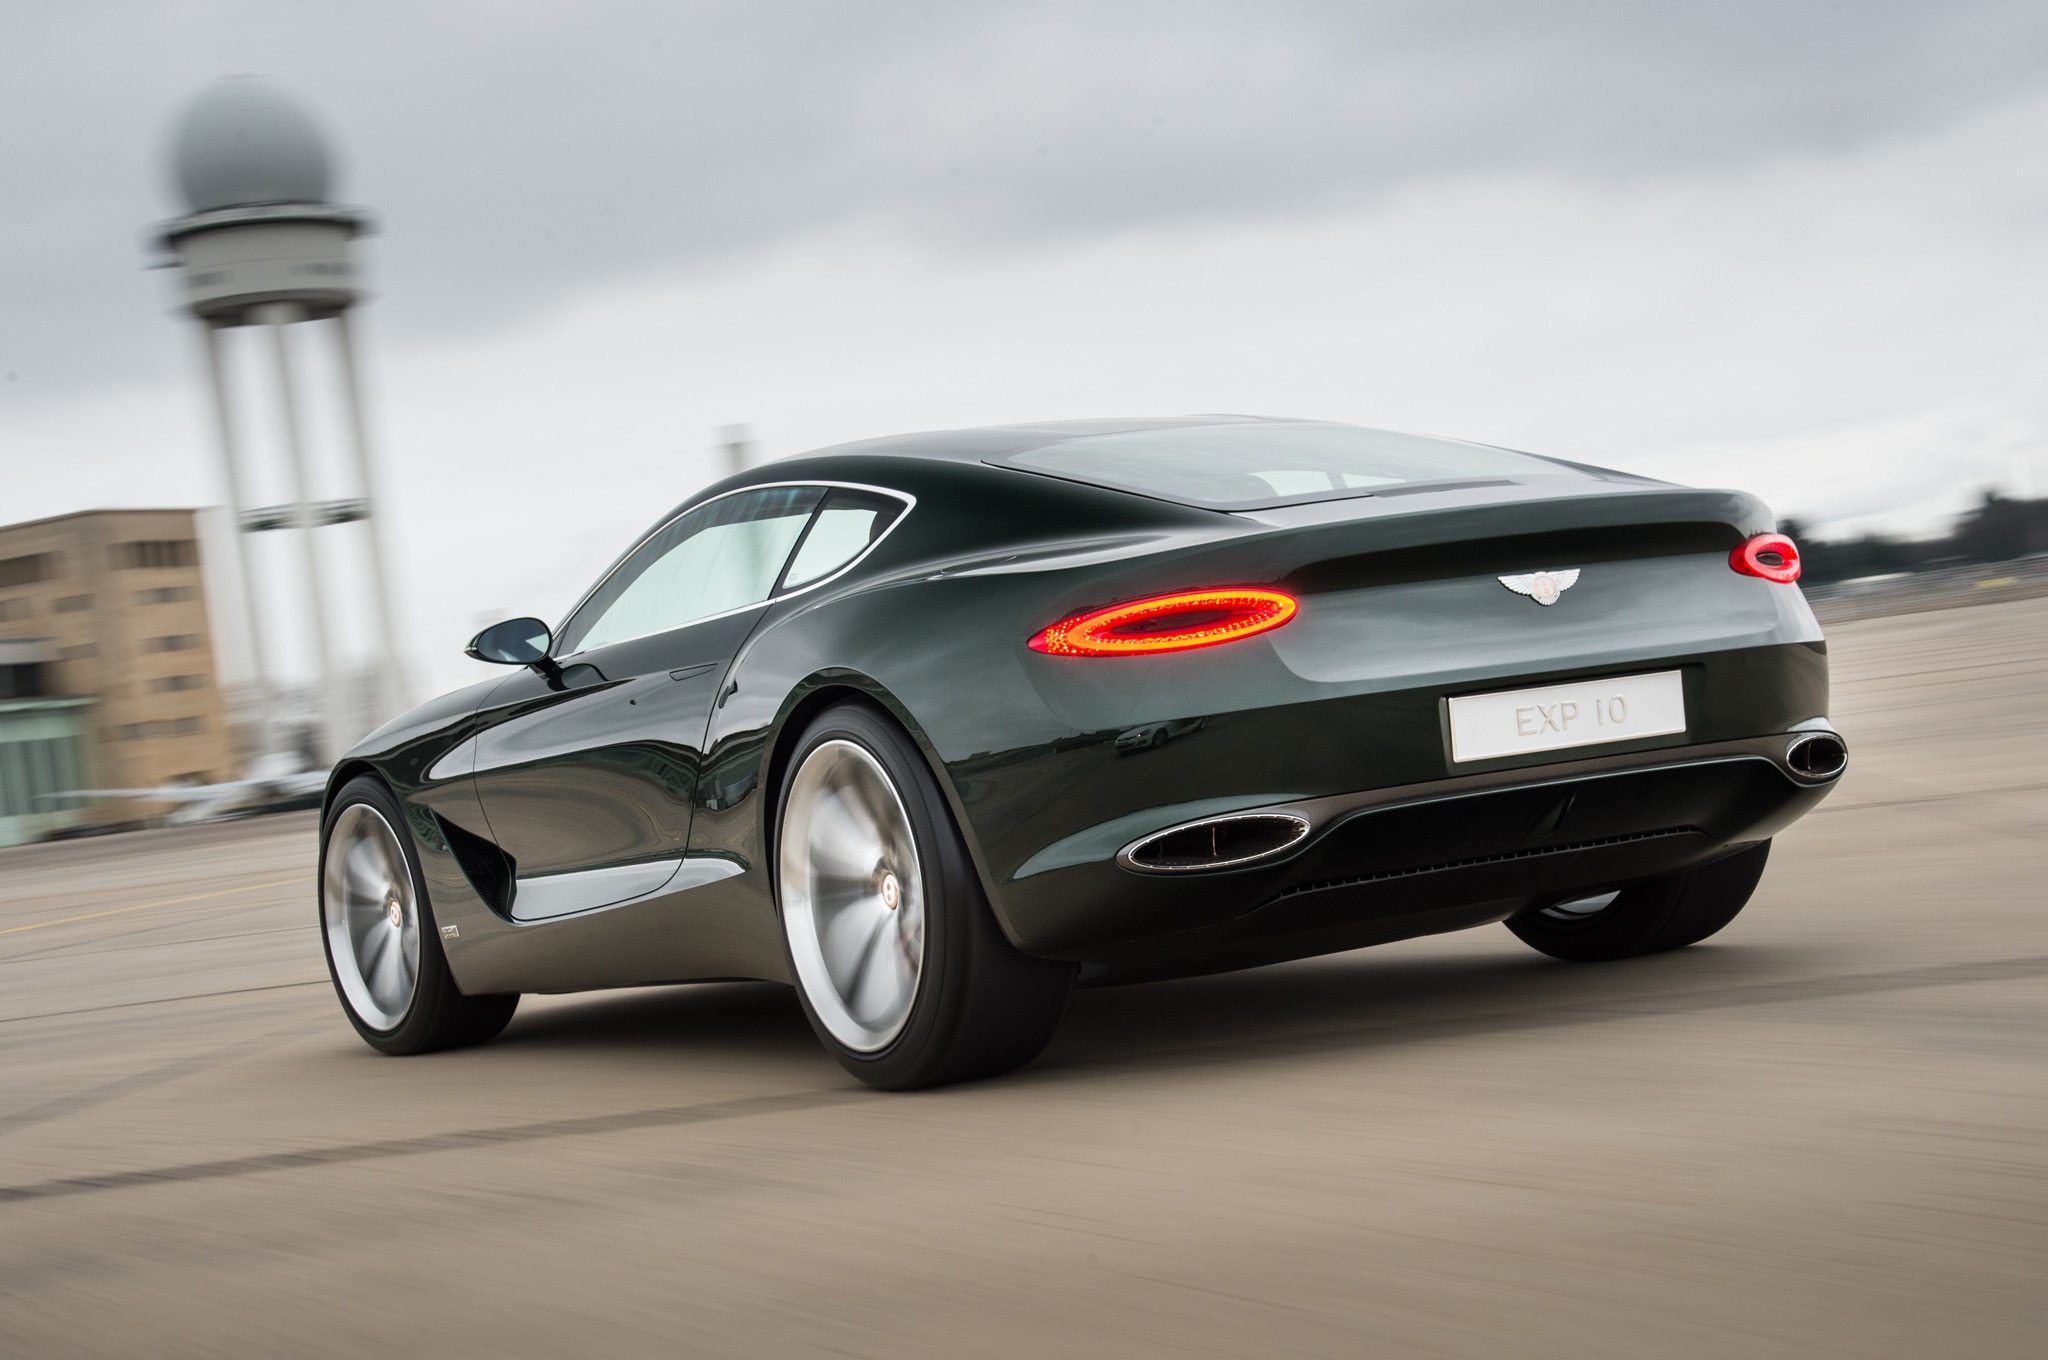 World Exclusive: At the Wheel of the Bentley EXP 10 Speed 6